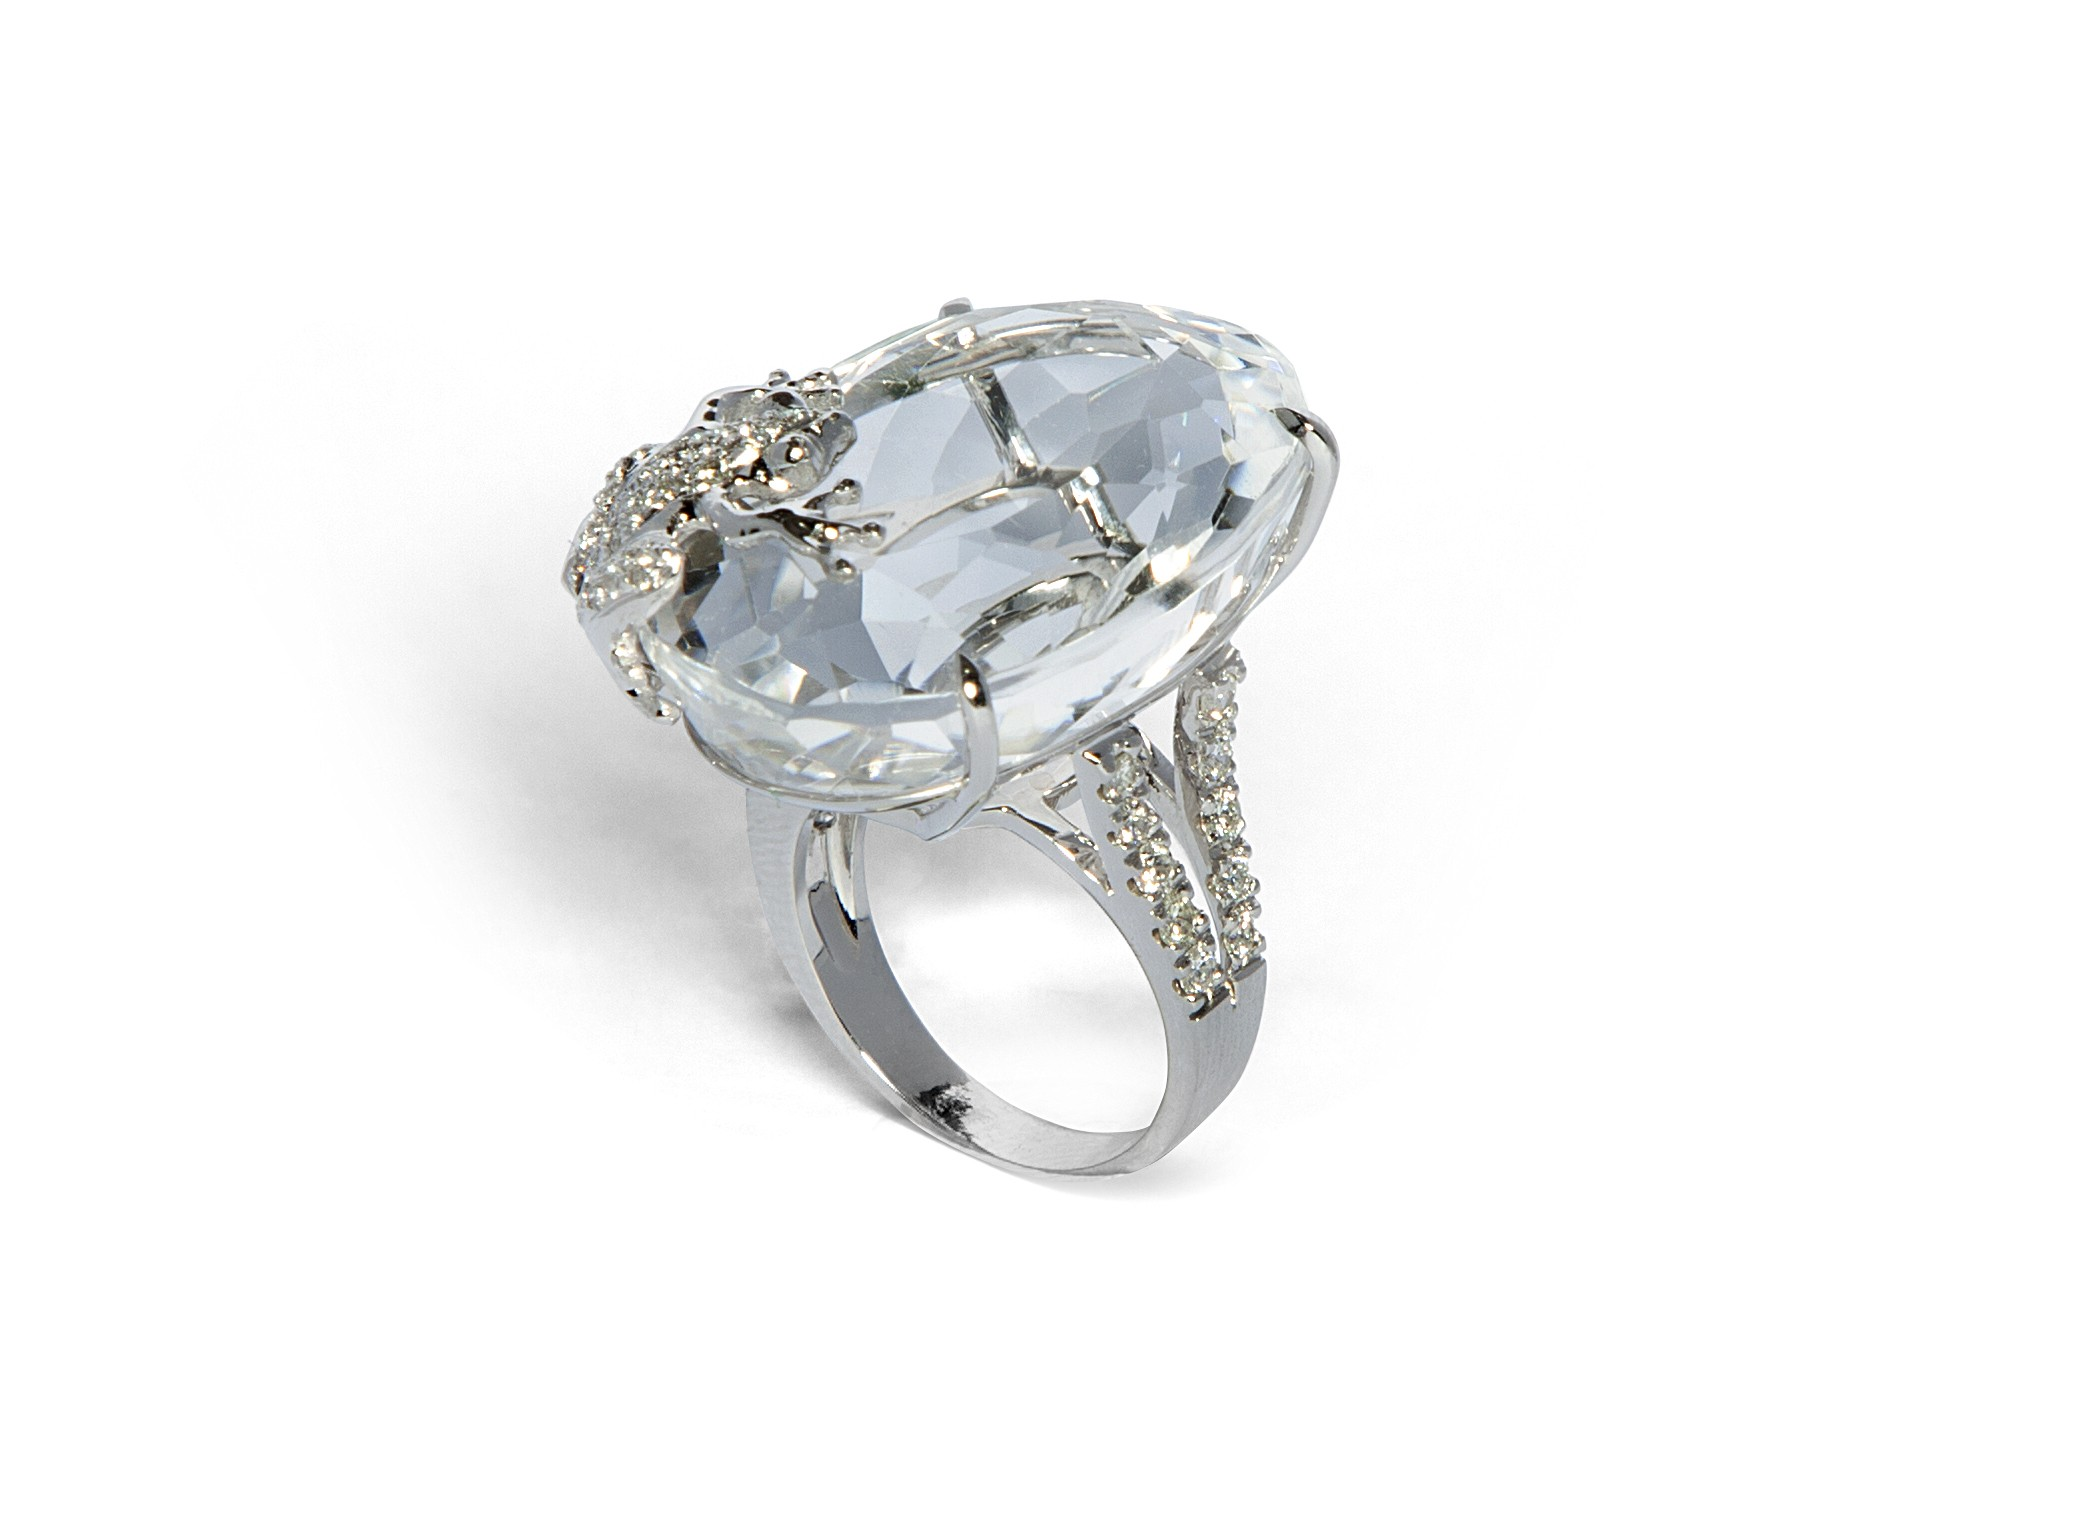 White Gold Ring With Diamonds And Rhinestone